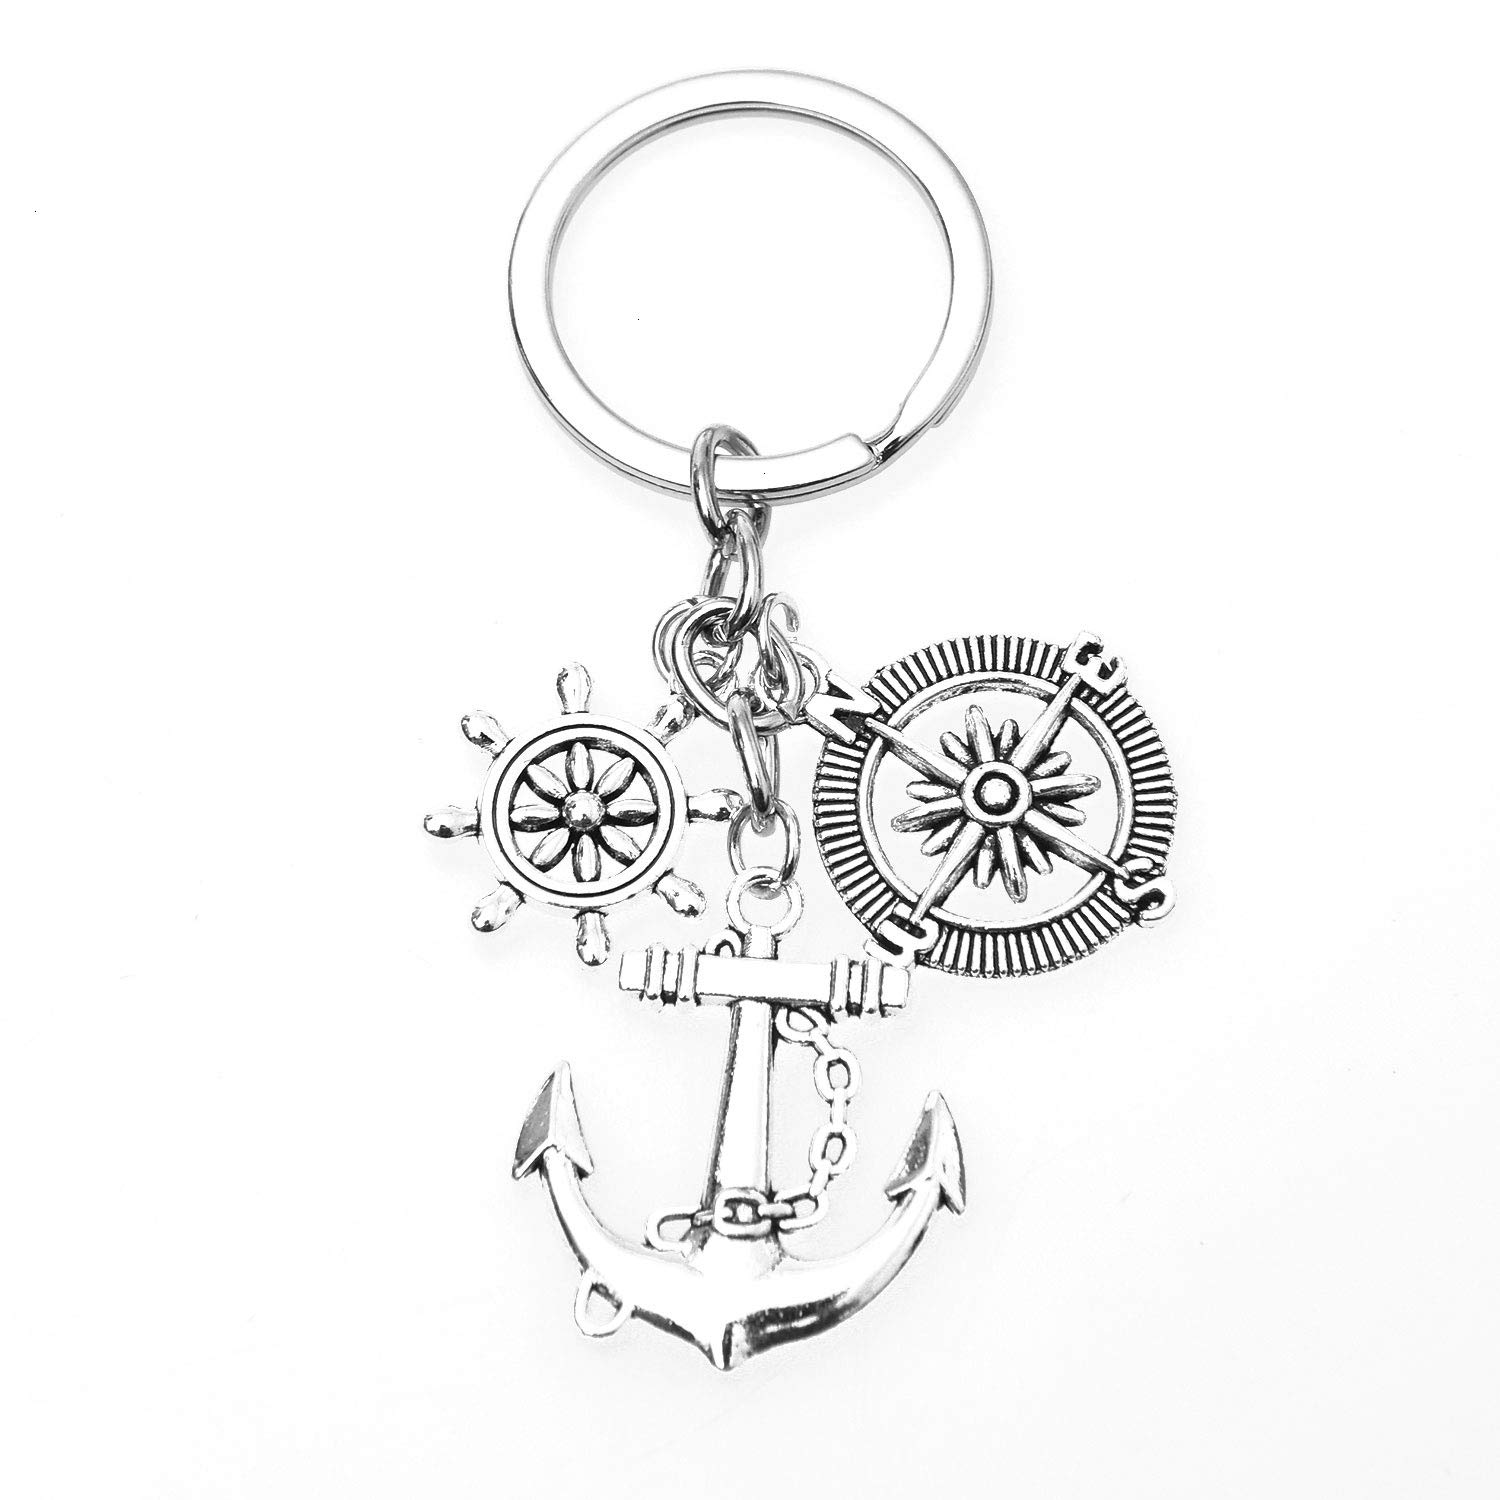 Key Chain Ring with Compass Ship Steering Wheel Anchor Charms for Family and Friends Monrocco Anchor Rudder Compass Keychain